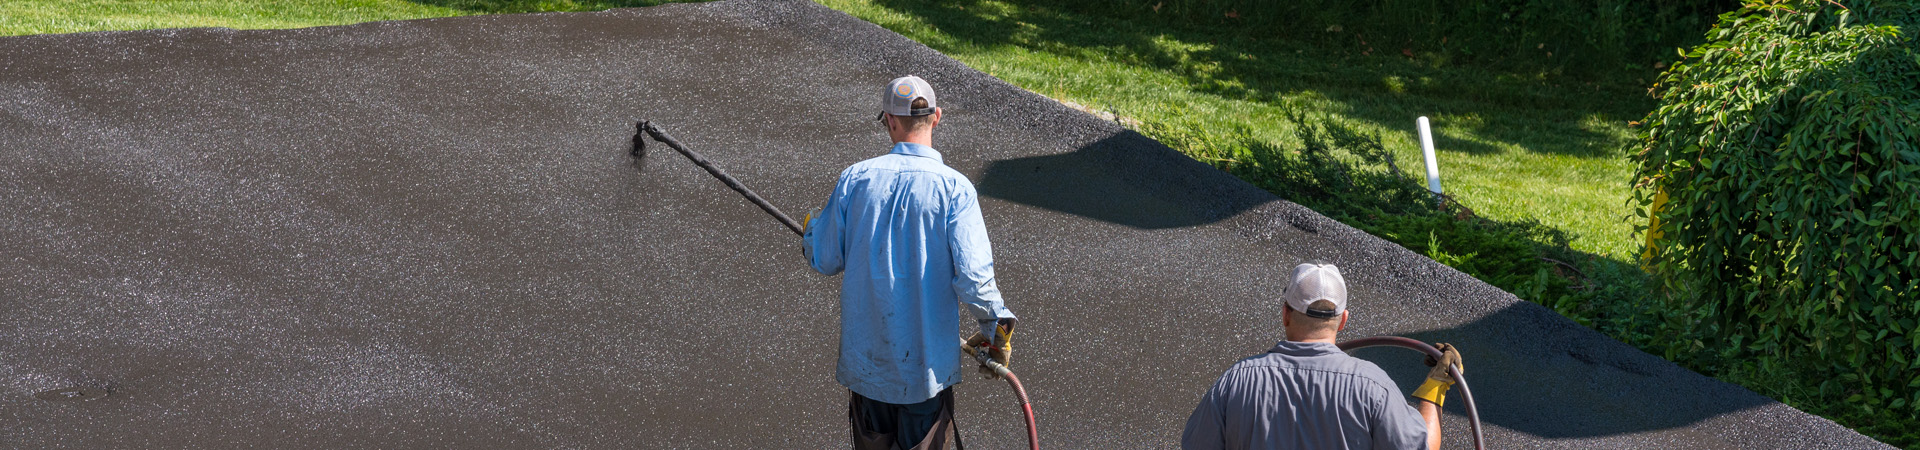 asphalt resurfacing paving and asphalt by Moretti in Westchester New Yorks by Moretti in Westchester NY